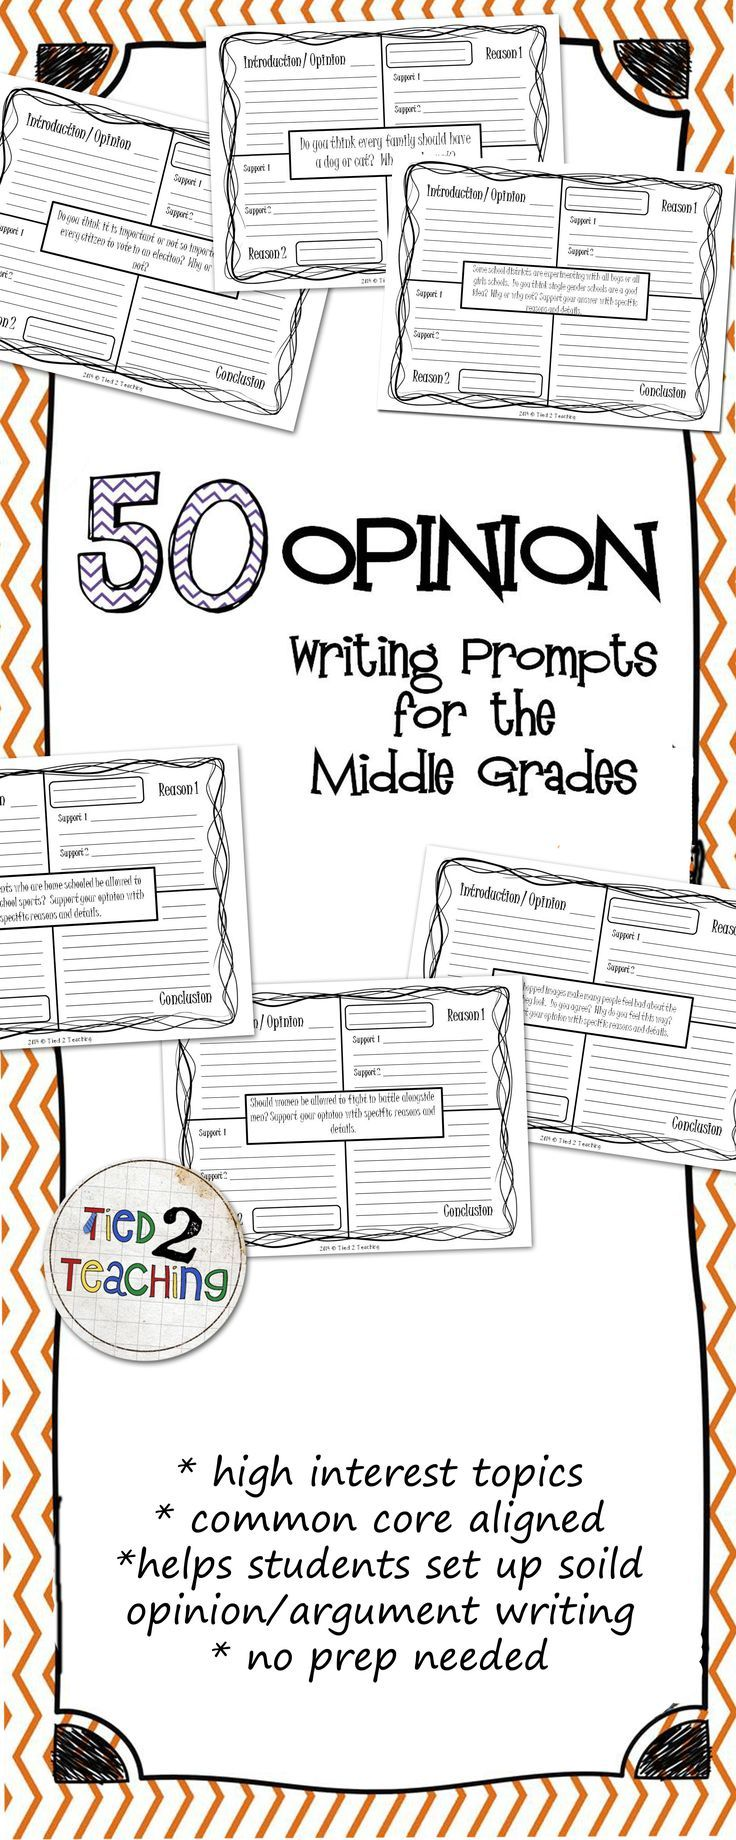 This resource comes with an extensive, Common Core Aligned, 50 Opinion / Argument Writing Prompts for the Middle Grades. Perfect for helping students organize their thinking as they structure and format their opinion and argument writing, these 4-square p